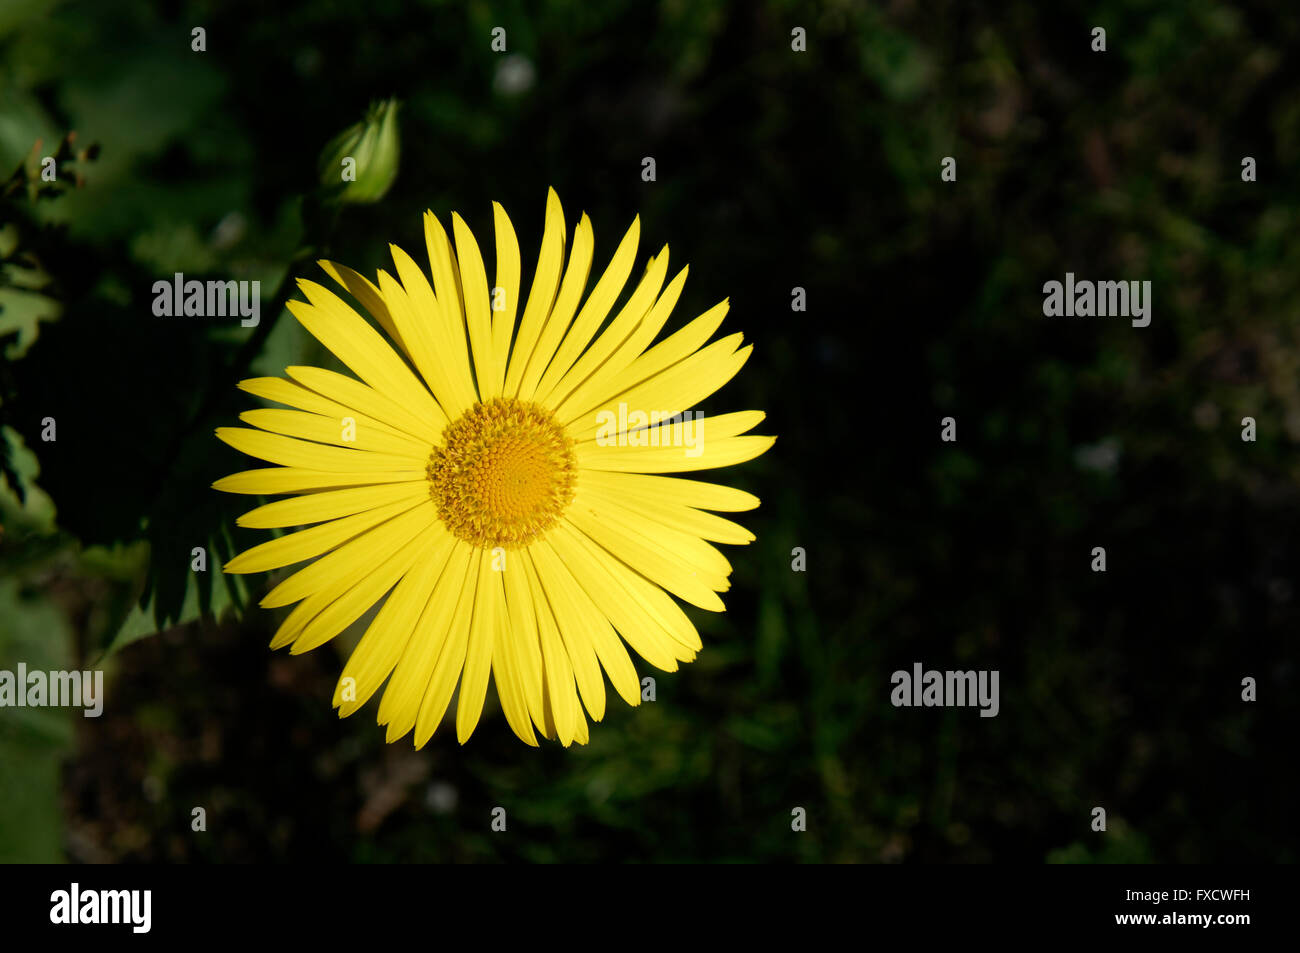 Doronicum orientale or leopard's bane flower, Family Asteraceae, in early spring, against a dark background Stock Photo